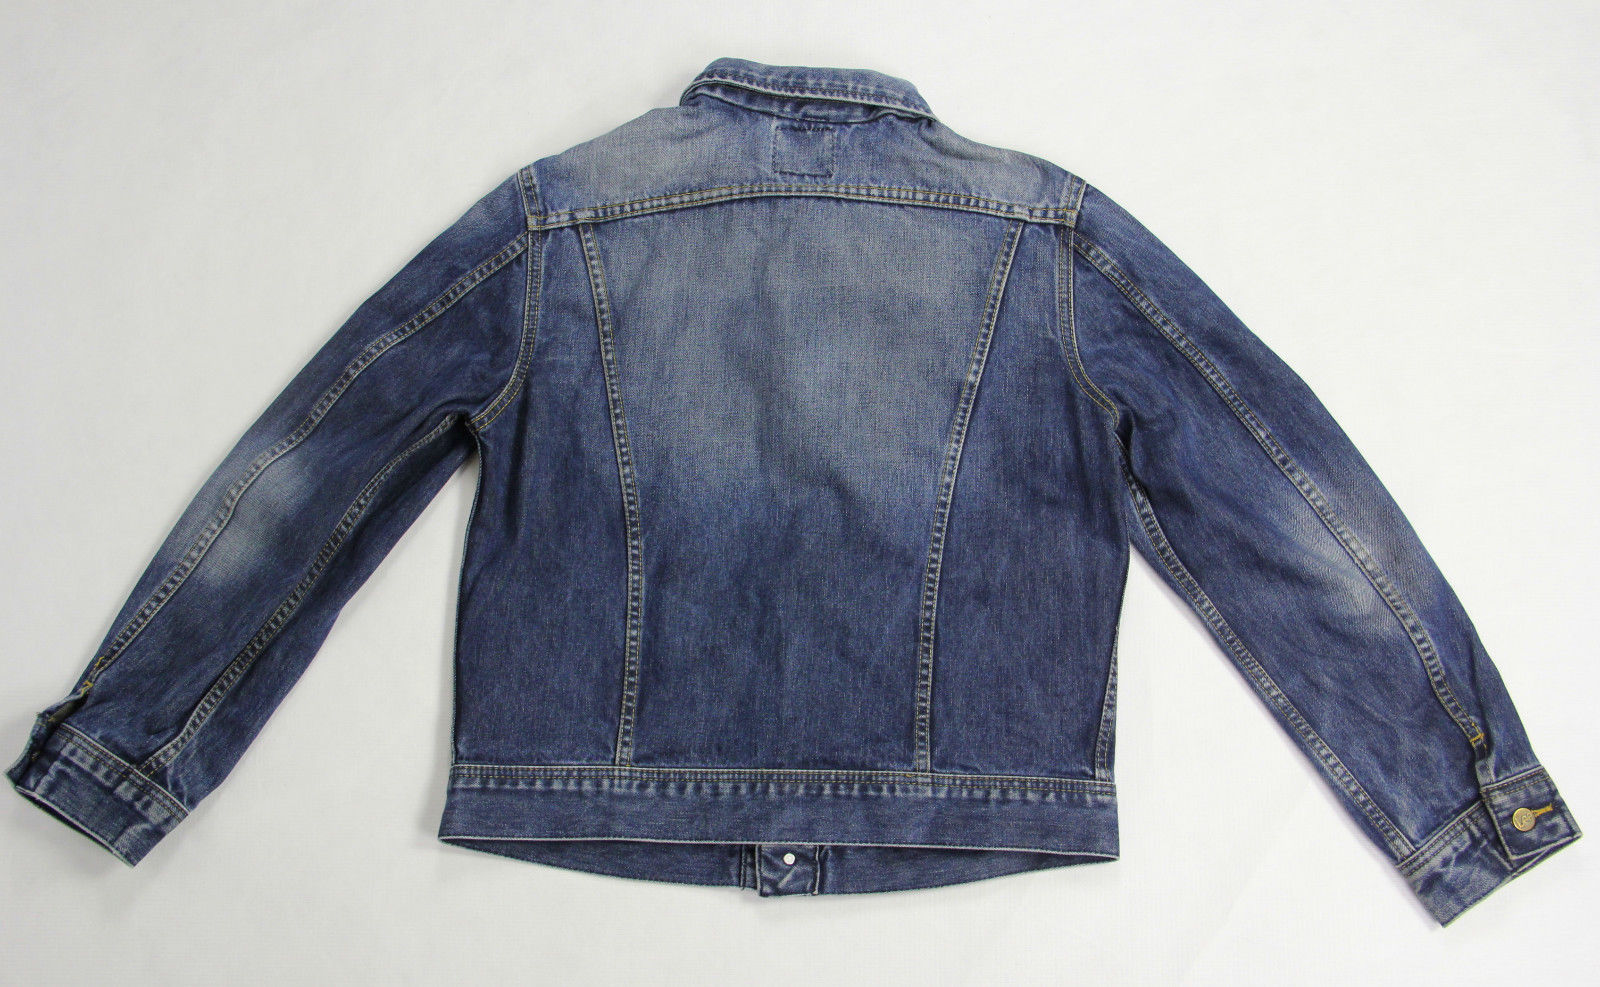 LEE Women's Blue Denim Trucker Style Jacket, SIZE XL - secondfirst